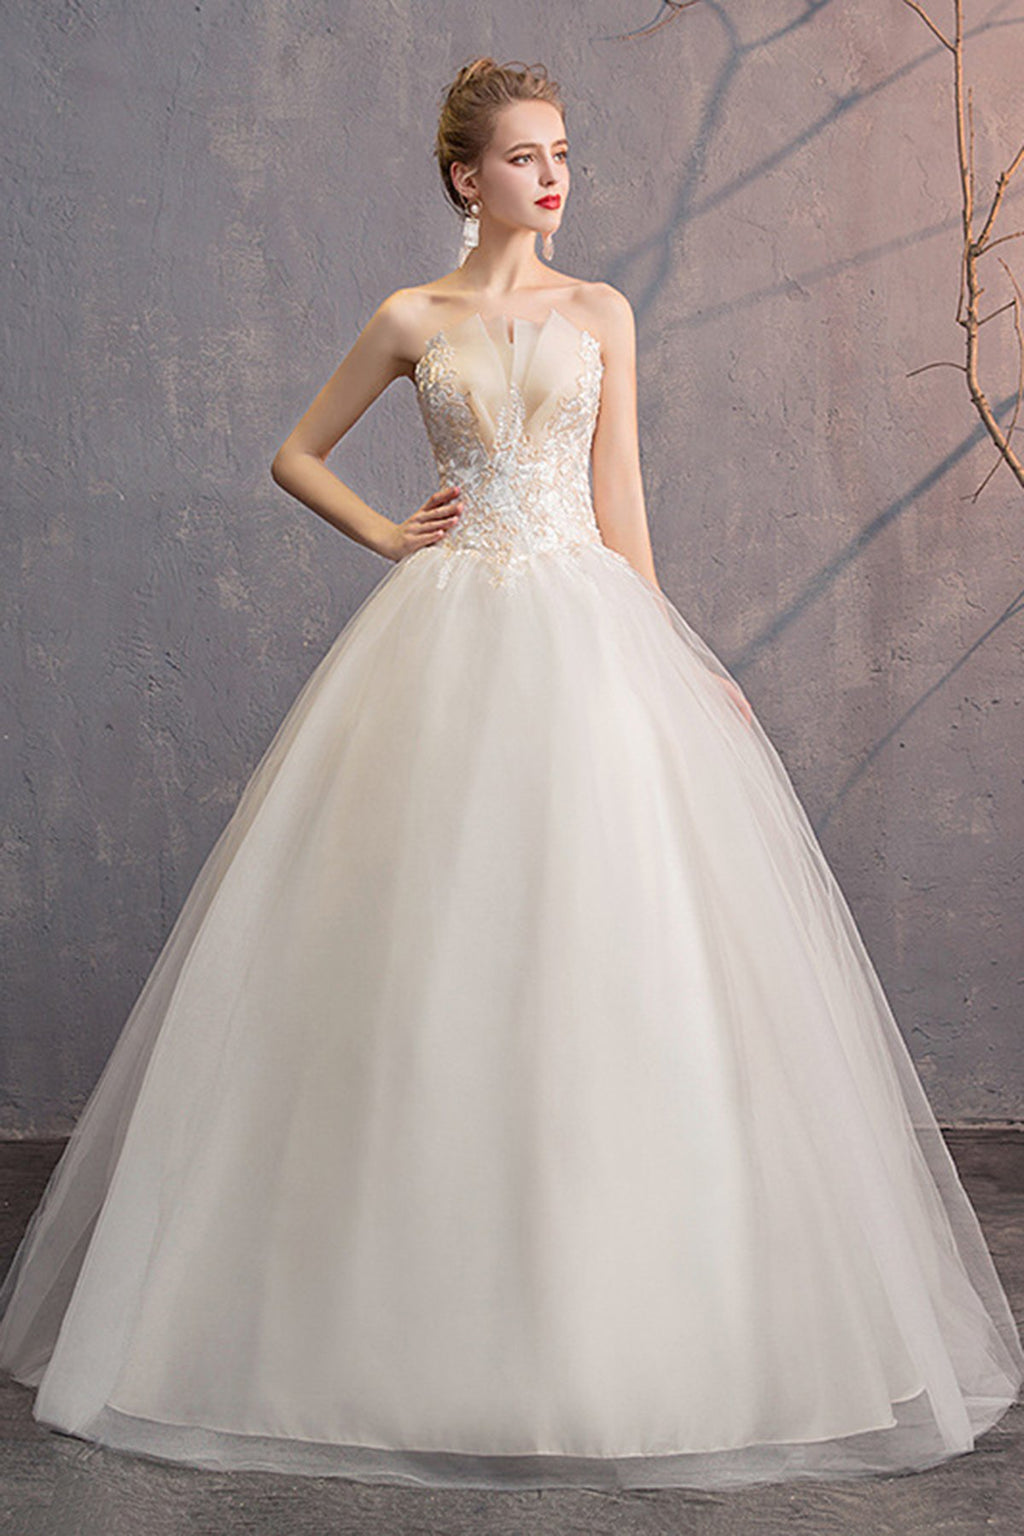 French Style Strapless Chapel Train Tulle Wedding Dress Wedding Dress